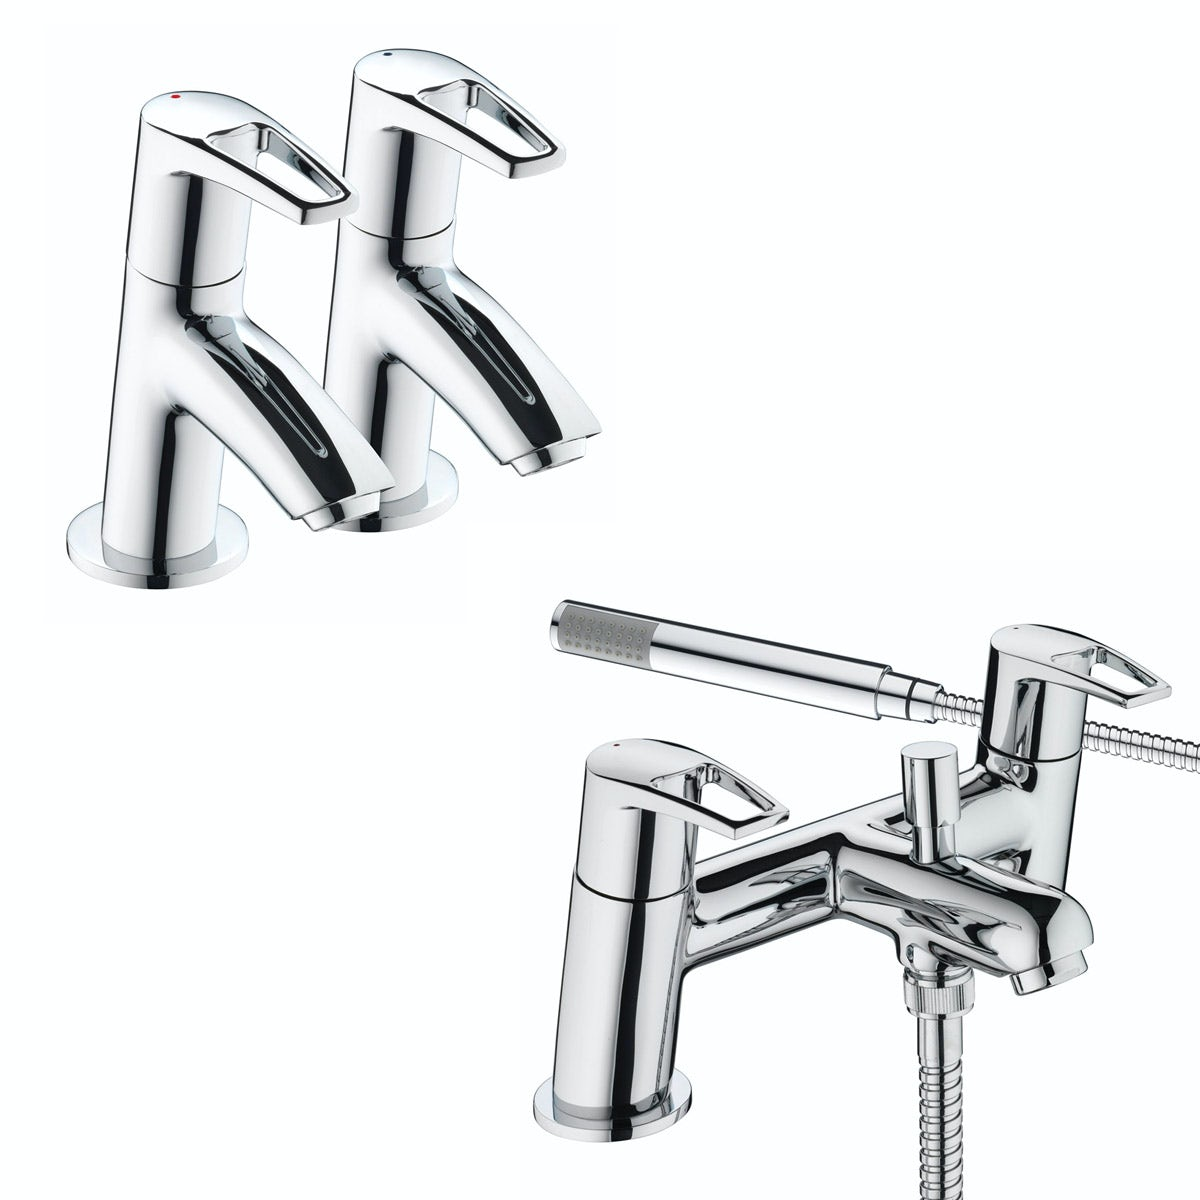 Bristan Smile basin tap and bath shower mixer tap pack